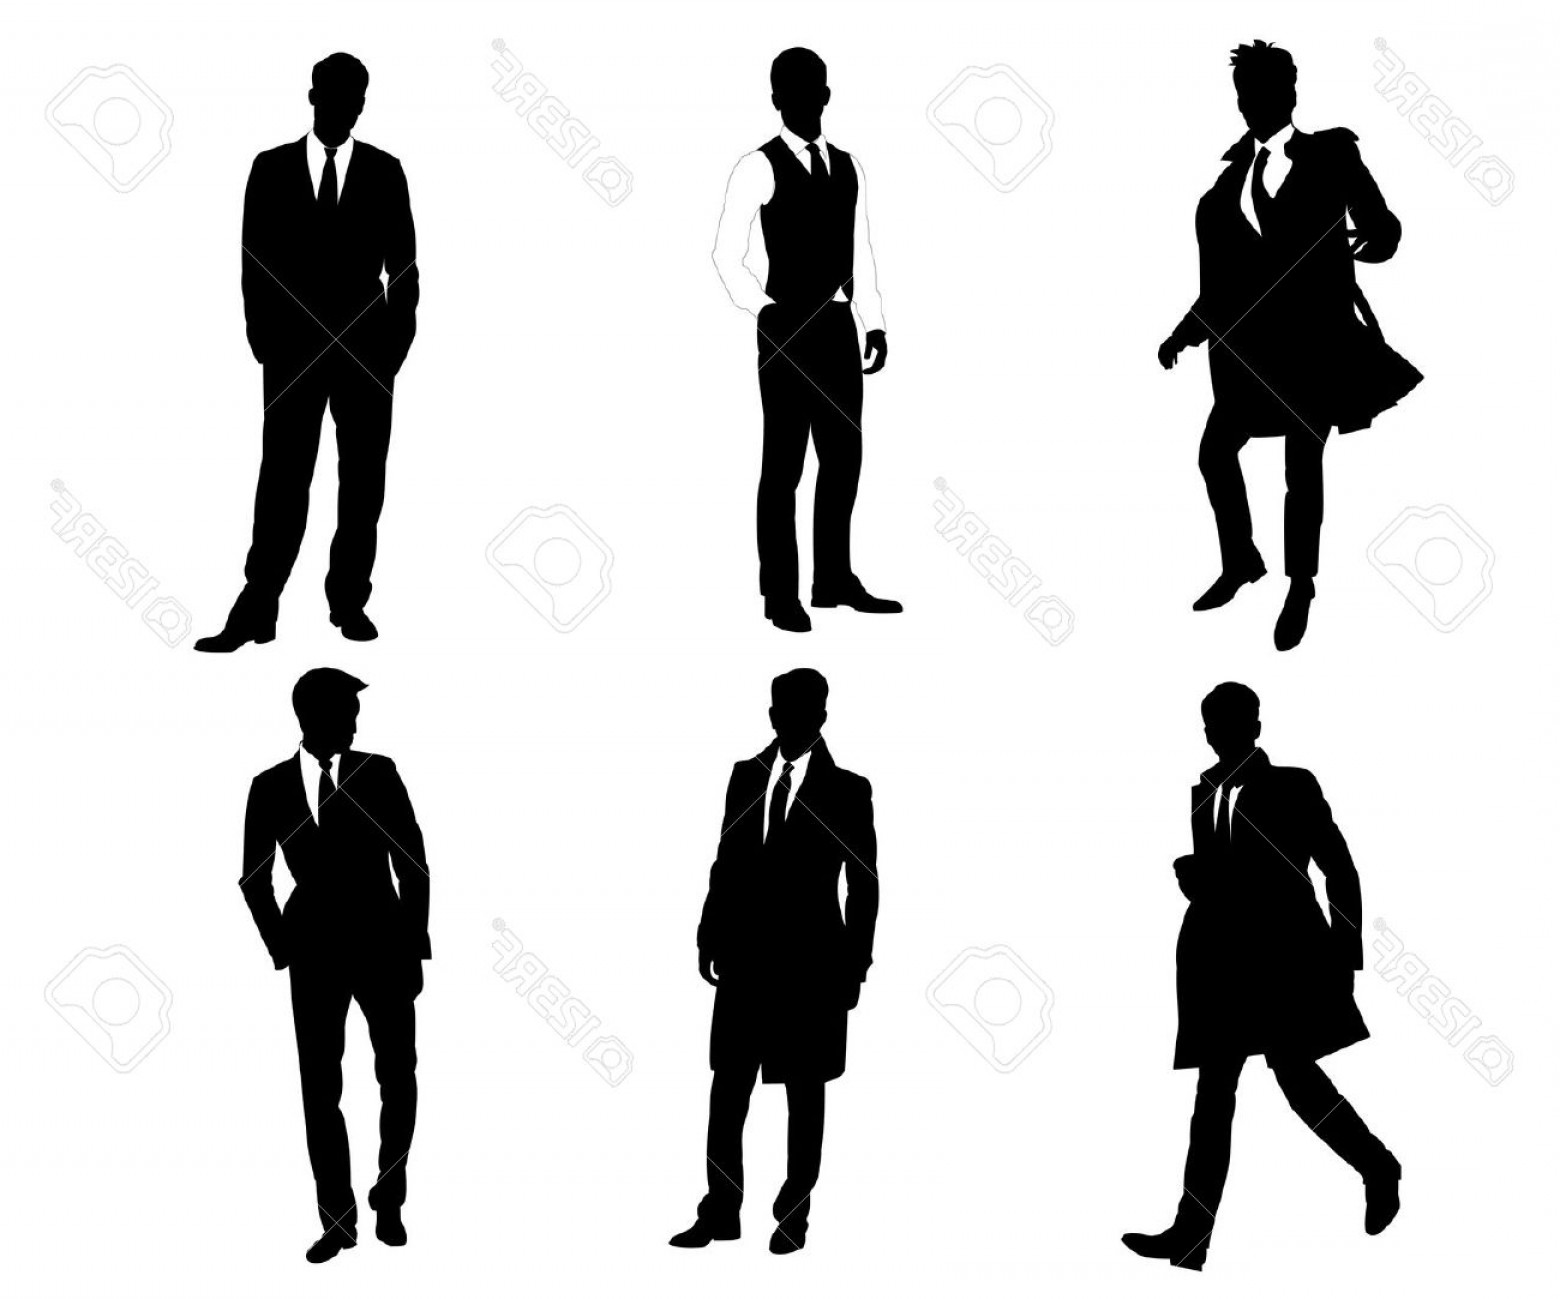 1560x1299 Clipart Of A Silhouette Of A Young African American Male In A Suit